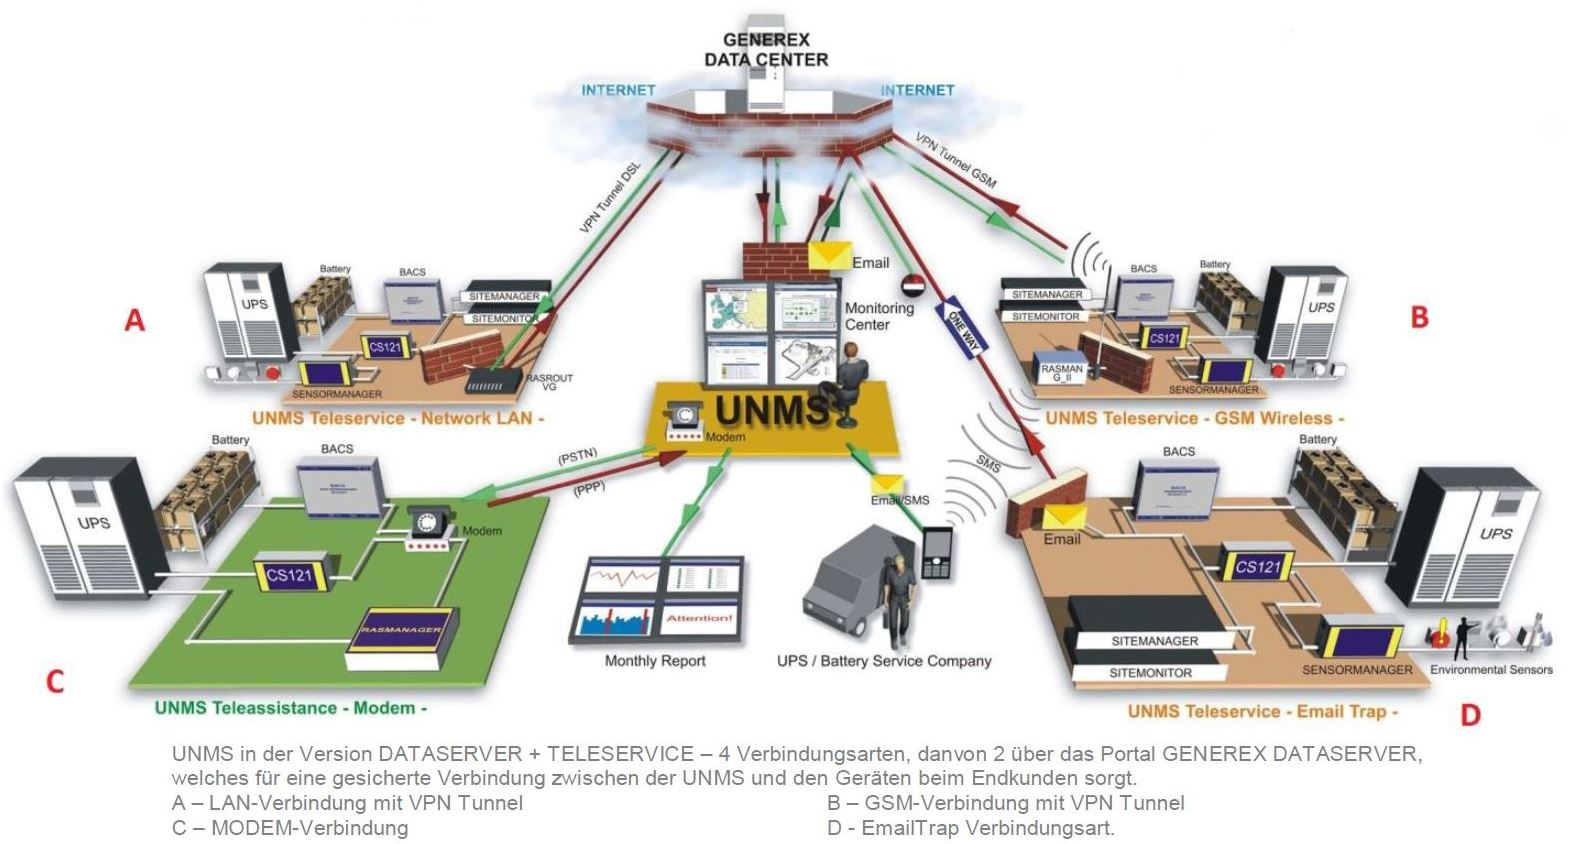 unms-2-generex-universelle-netzwerk-management-software-diagramm-2